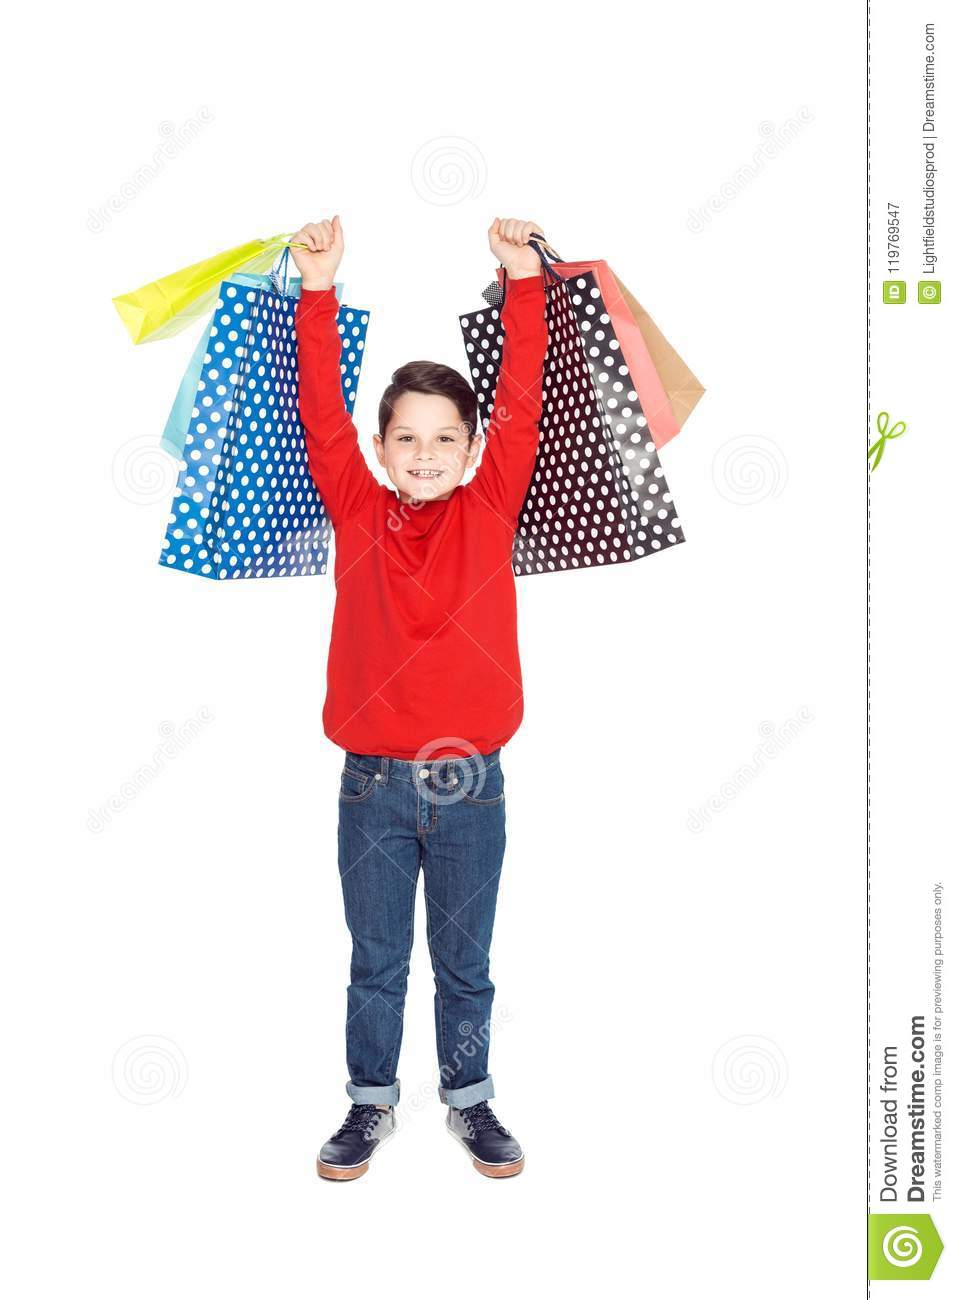 little boy in red sweater with shopping bags,